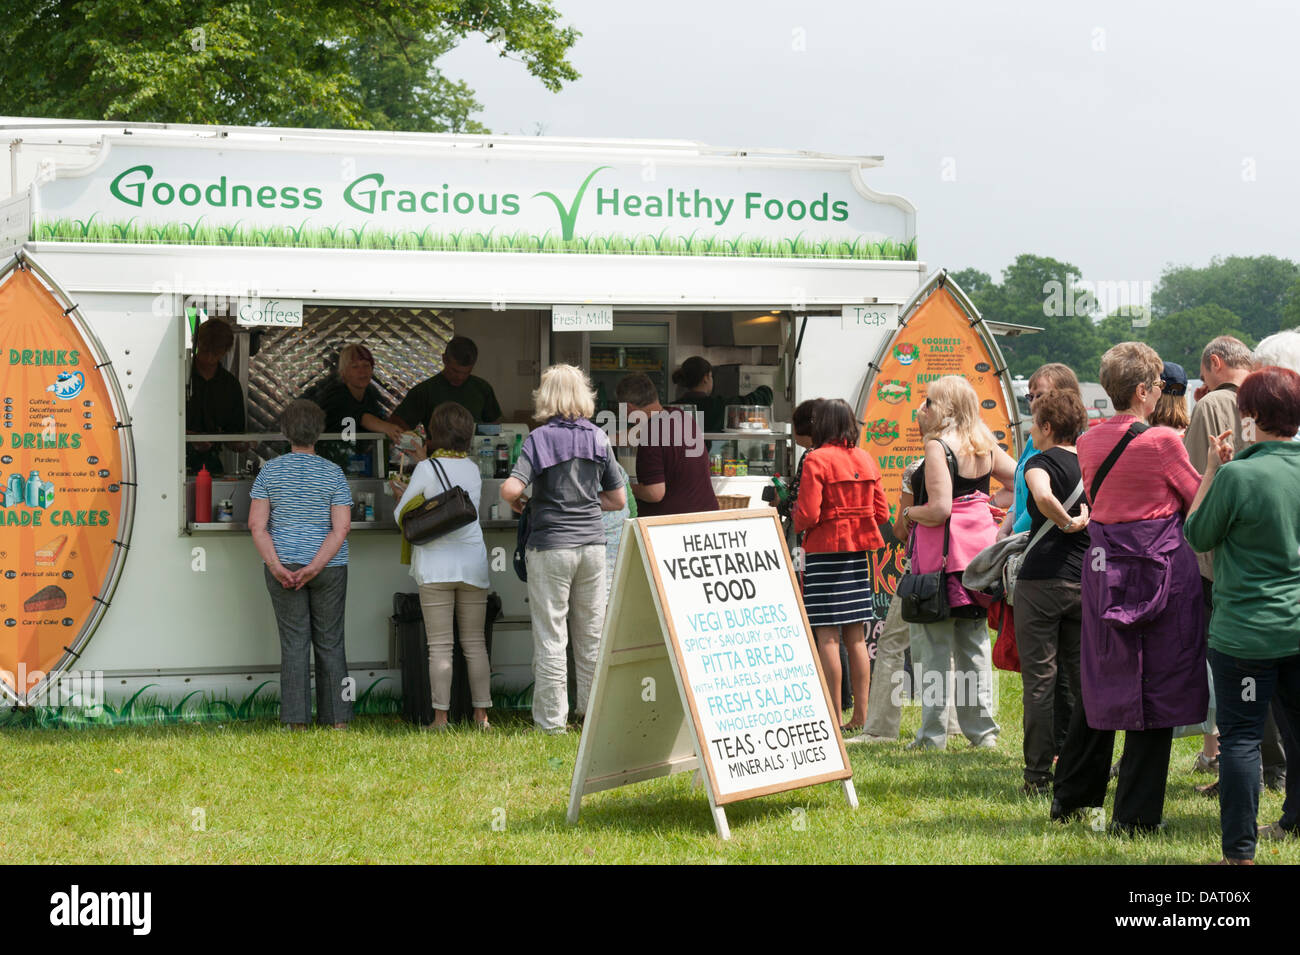 Customers queuing at the Goodness Gracious Healthy Foods stall at Blenheim Palace Flower Show UK - Stock Image